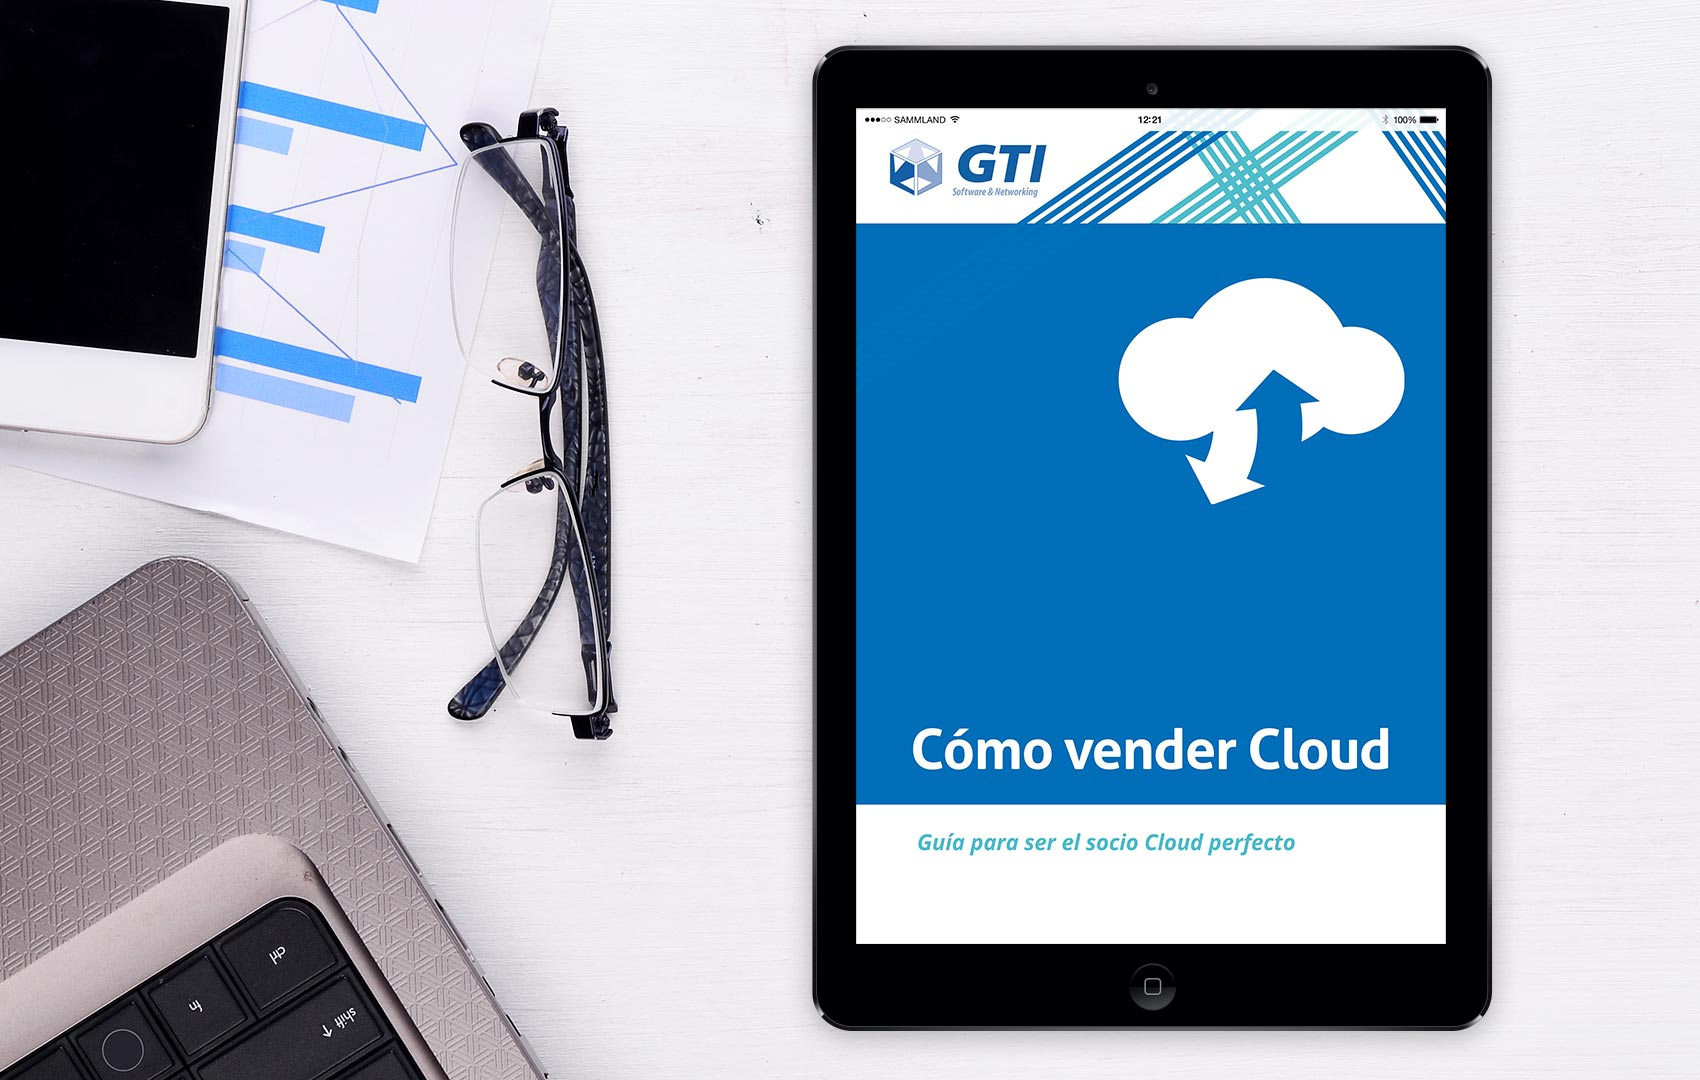 gti-content-marketing-diseño-grafico-editorial-maquetacion-ebook-vendercloud-01